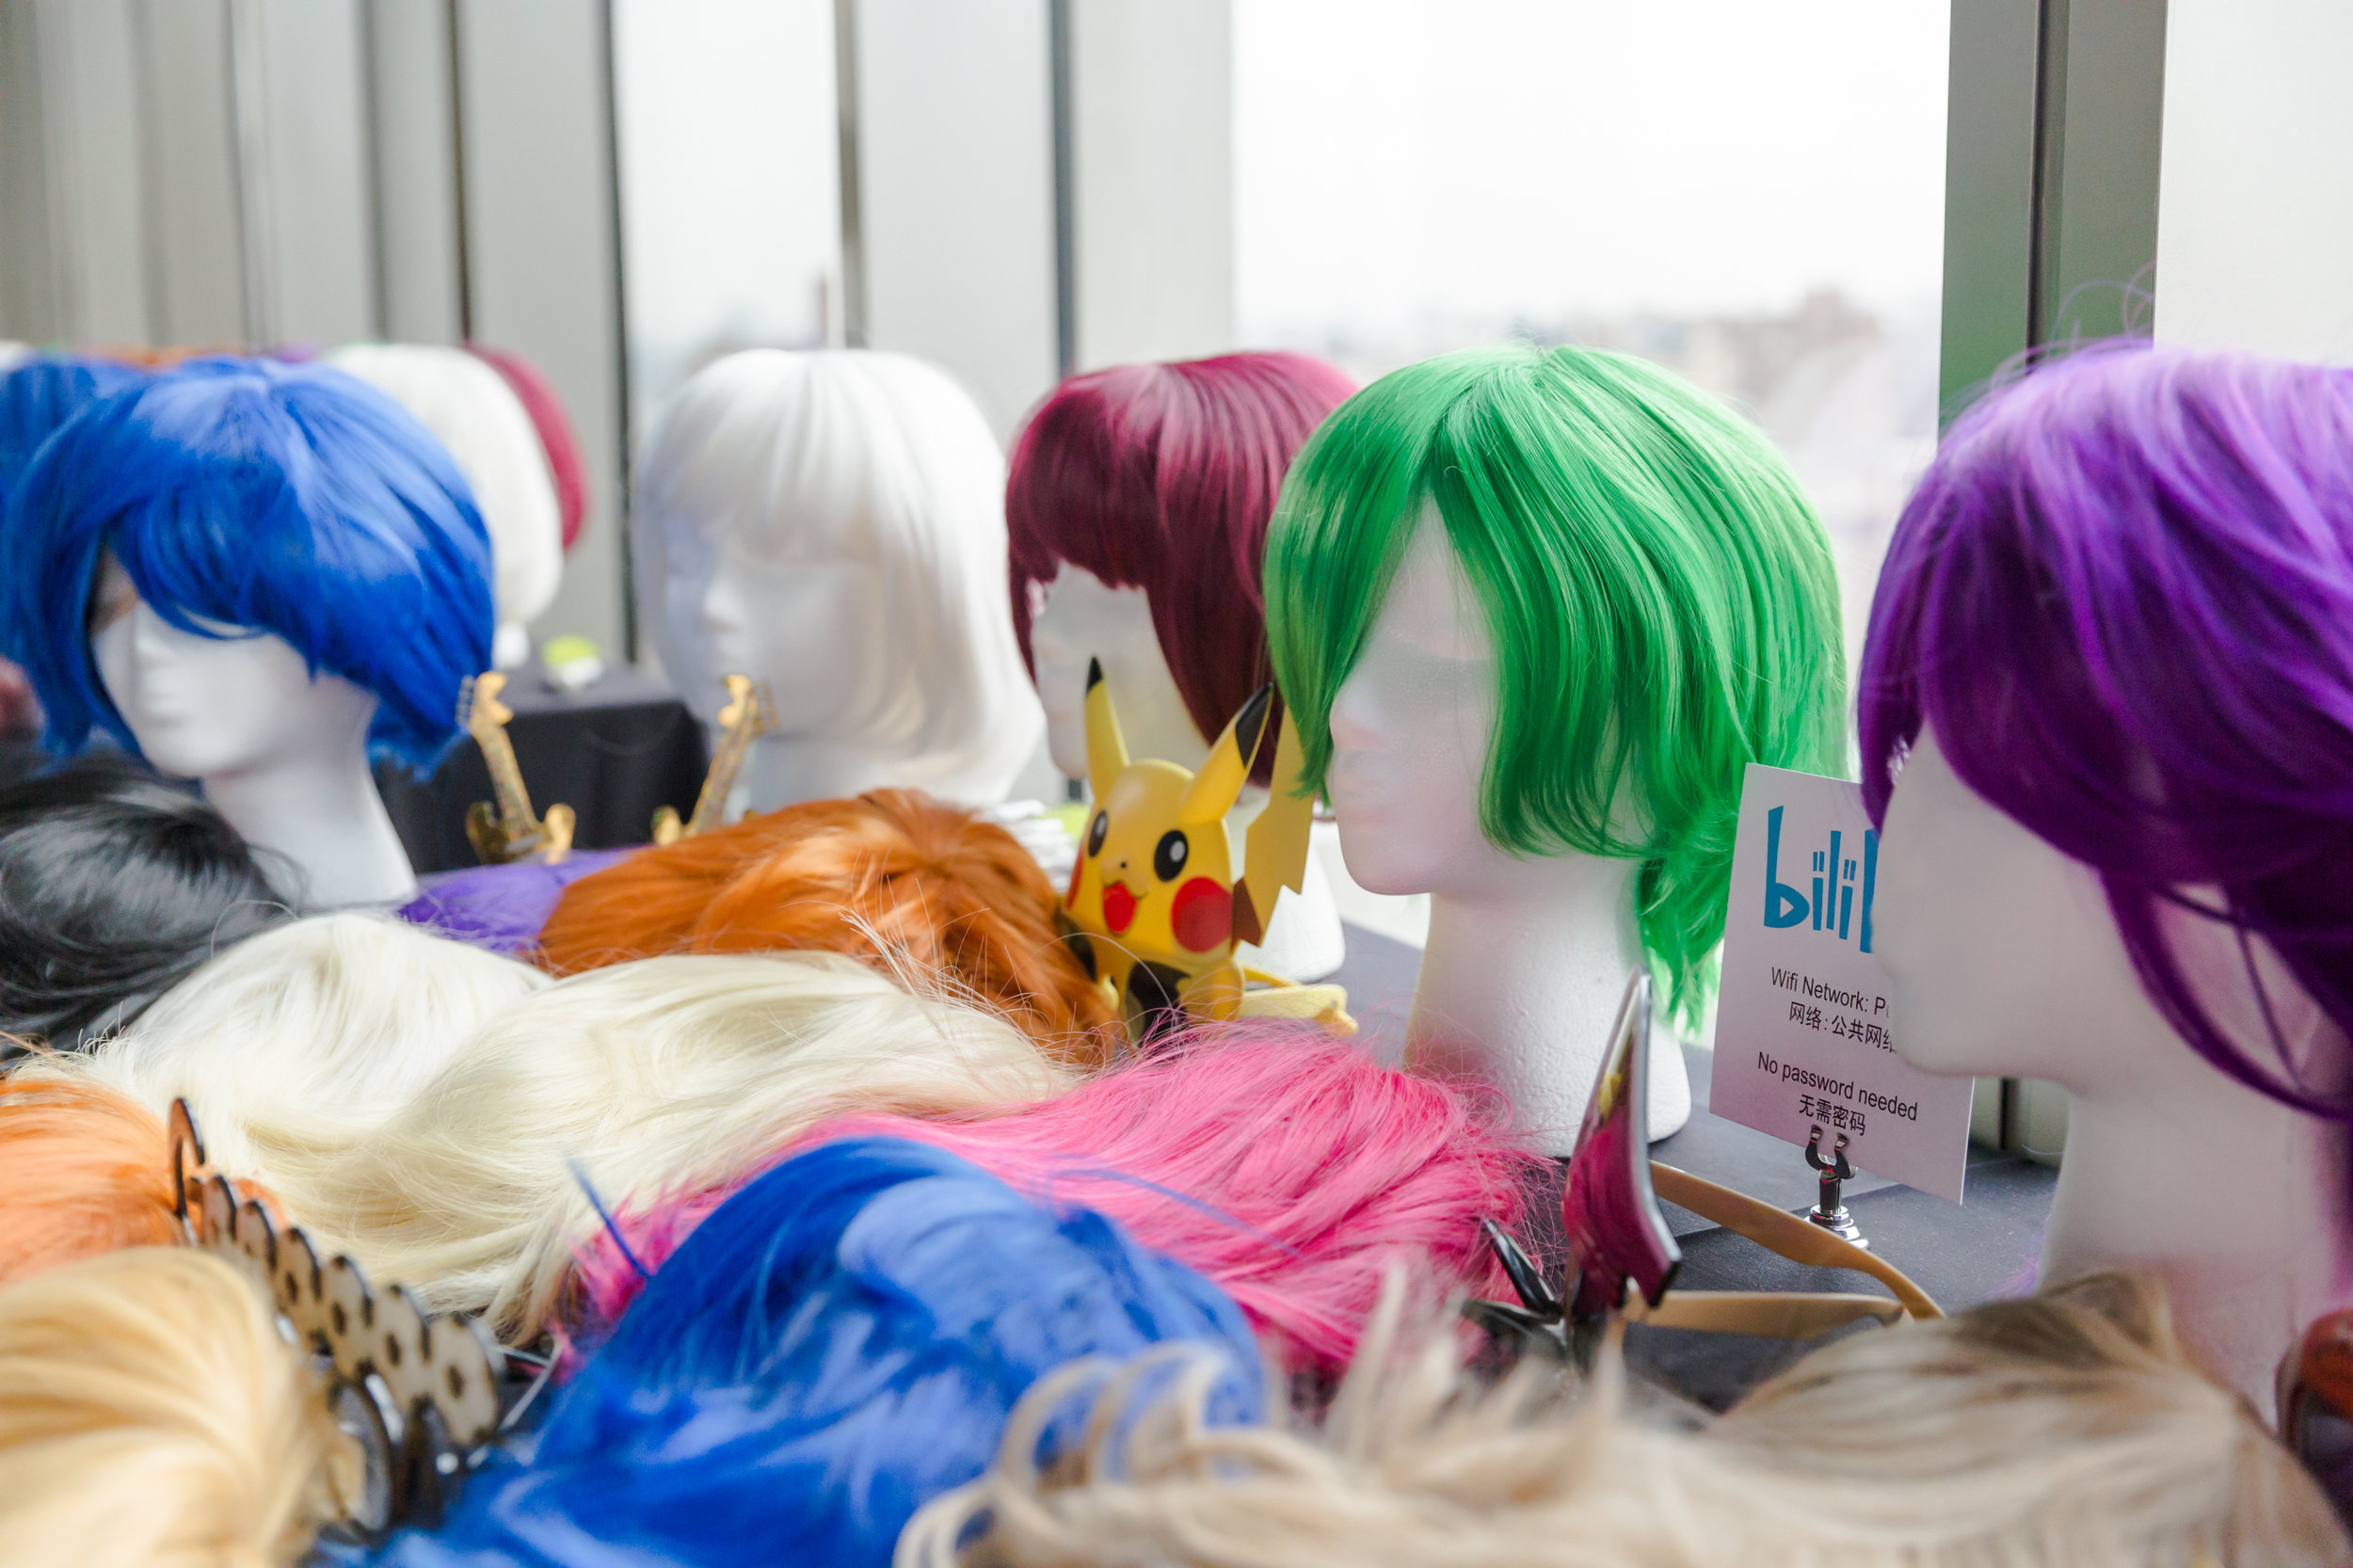 Colorful wigs and specialty sunglasses